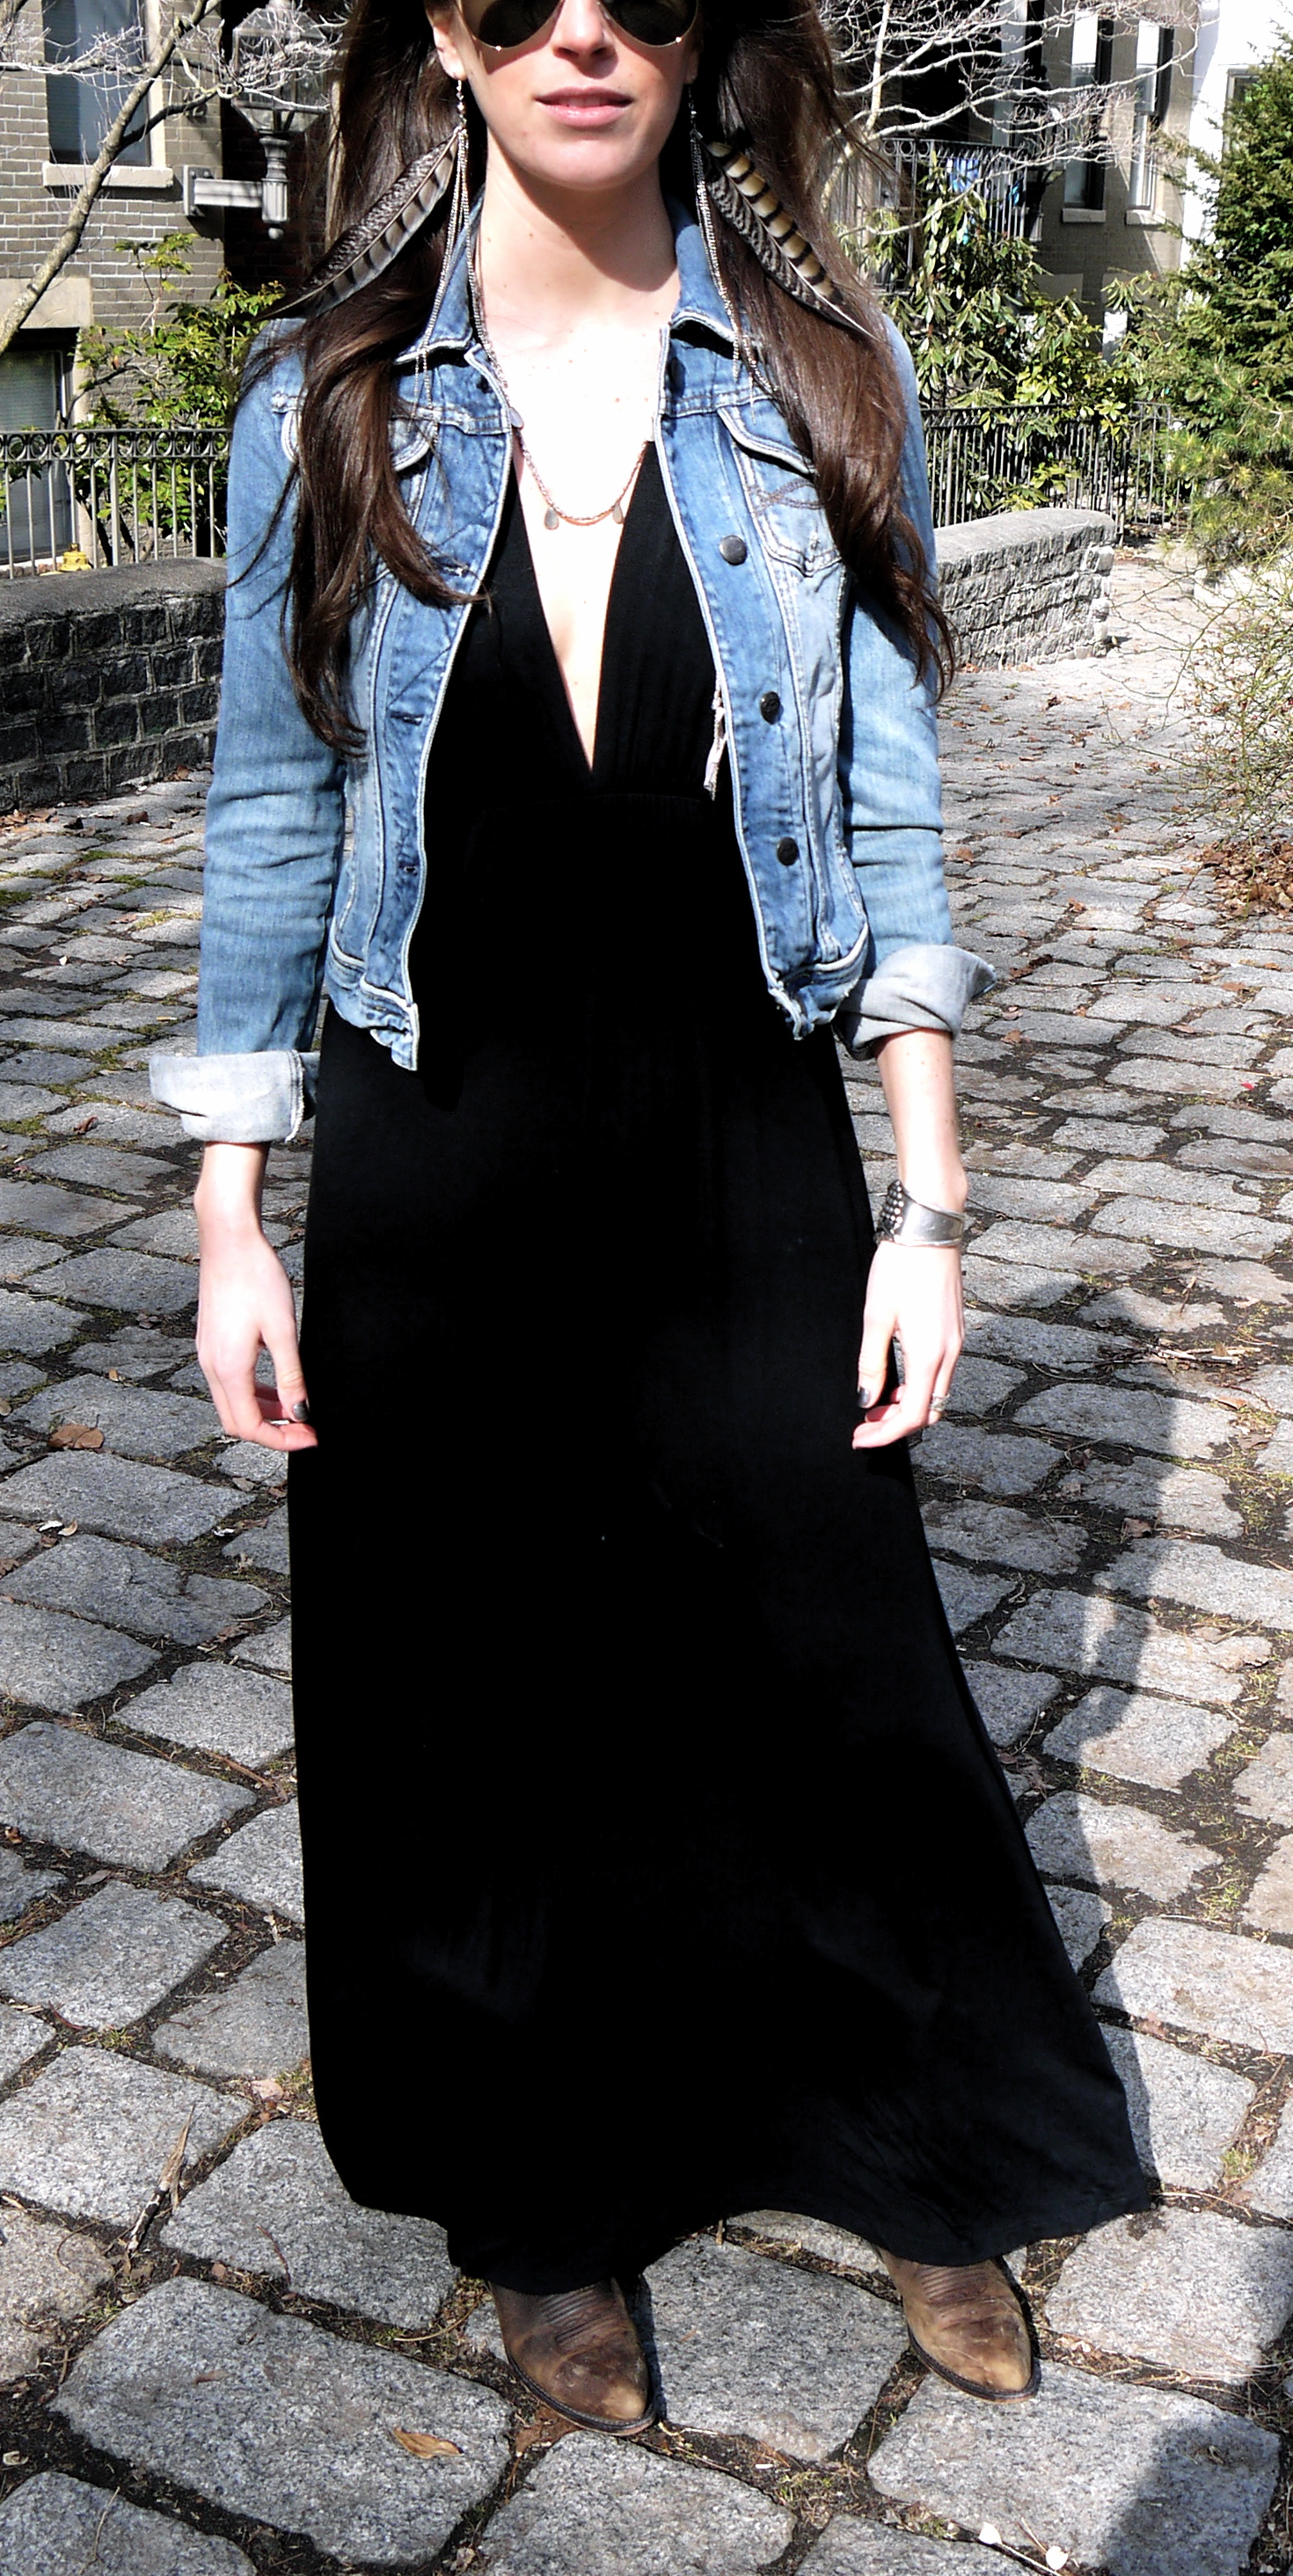 Black dress jean jacket - A